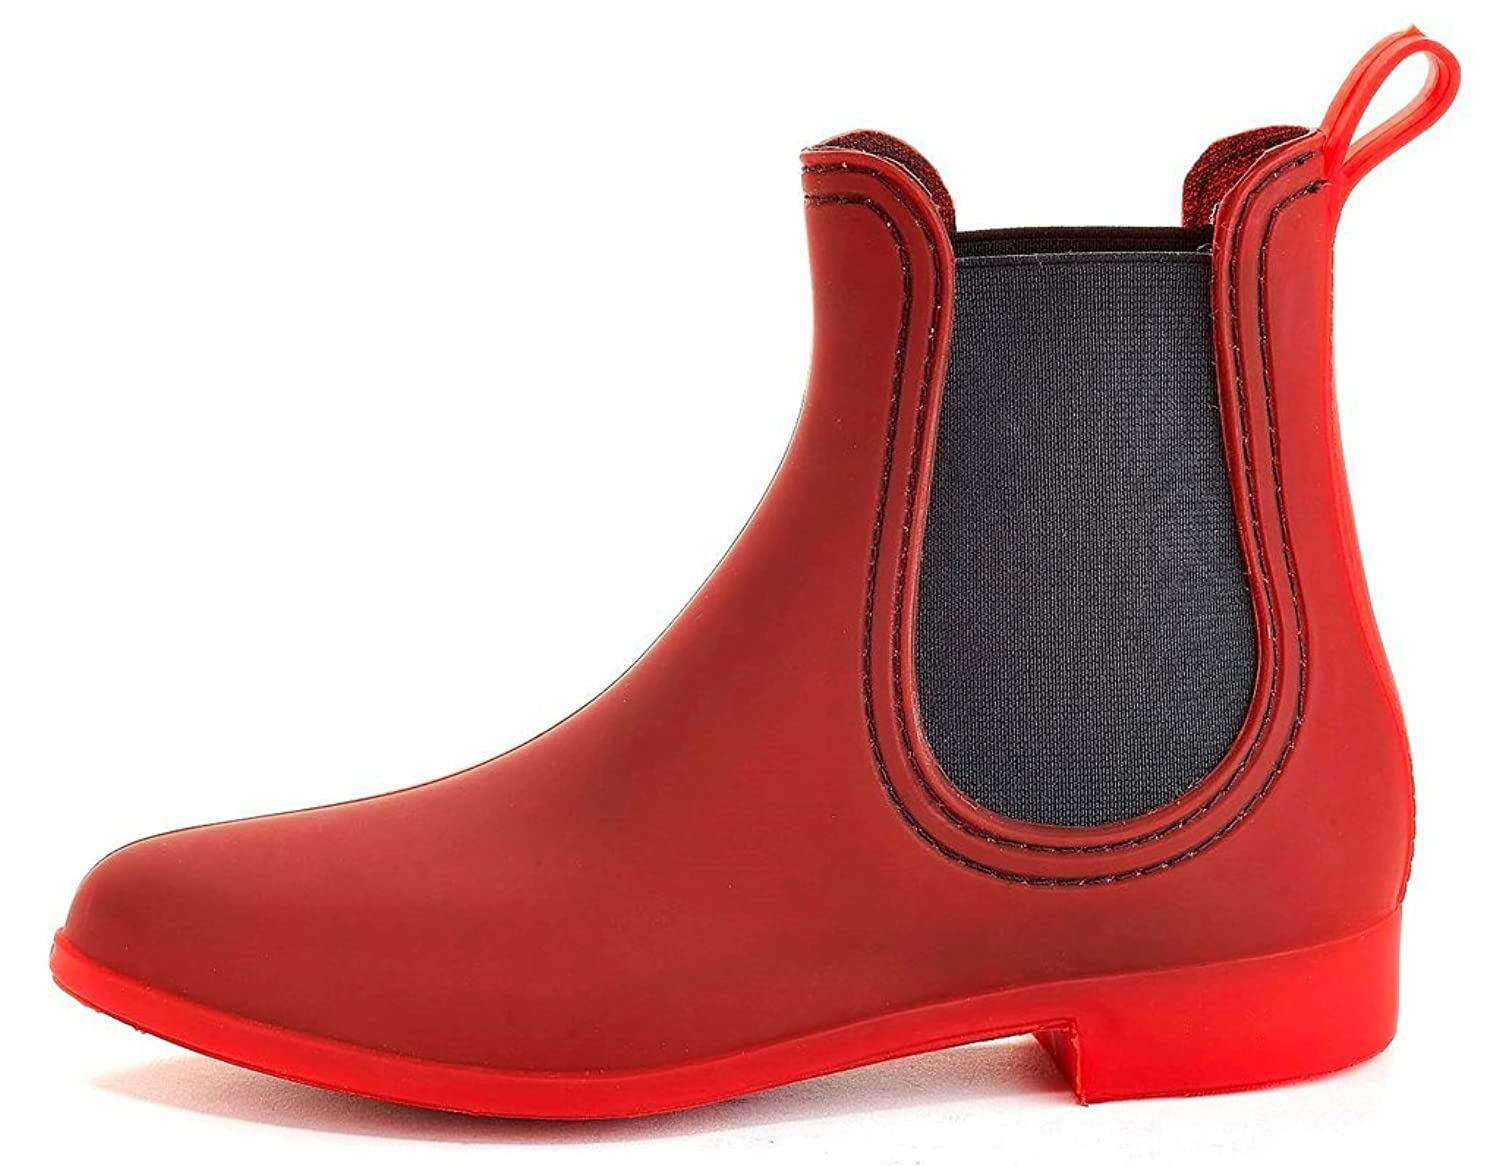 Henry Ferrera Women's Clarity Sky 7 inches (Over The Ankle) Rubber Rainboot & Gardenboot with Comfortable Insole B01GTQSYA6 Parent